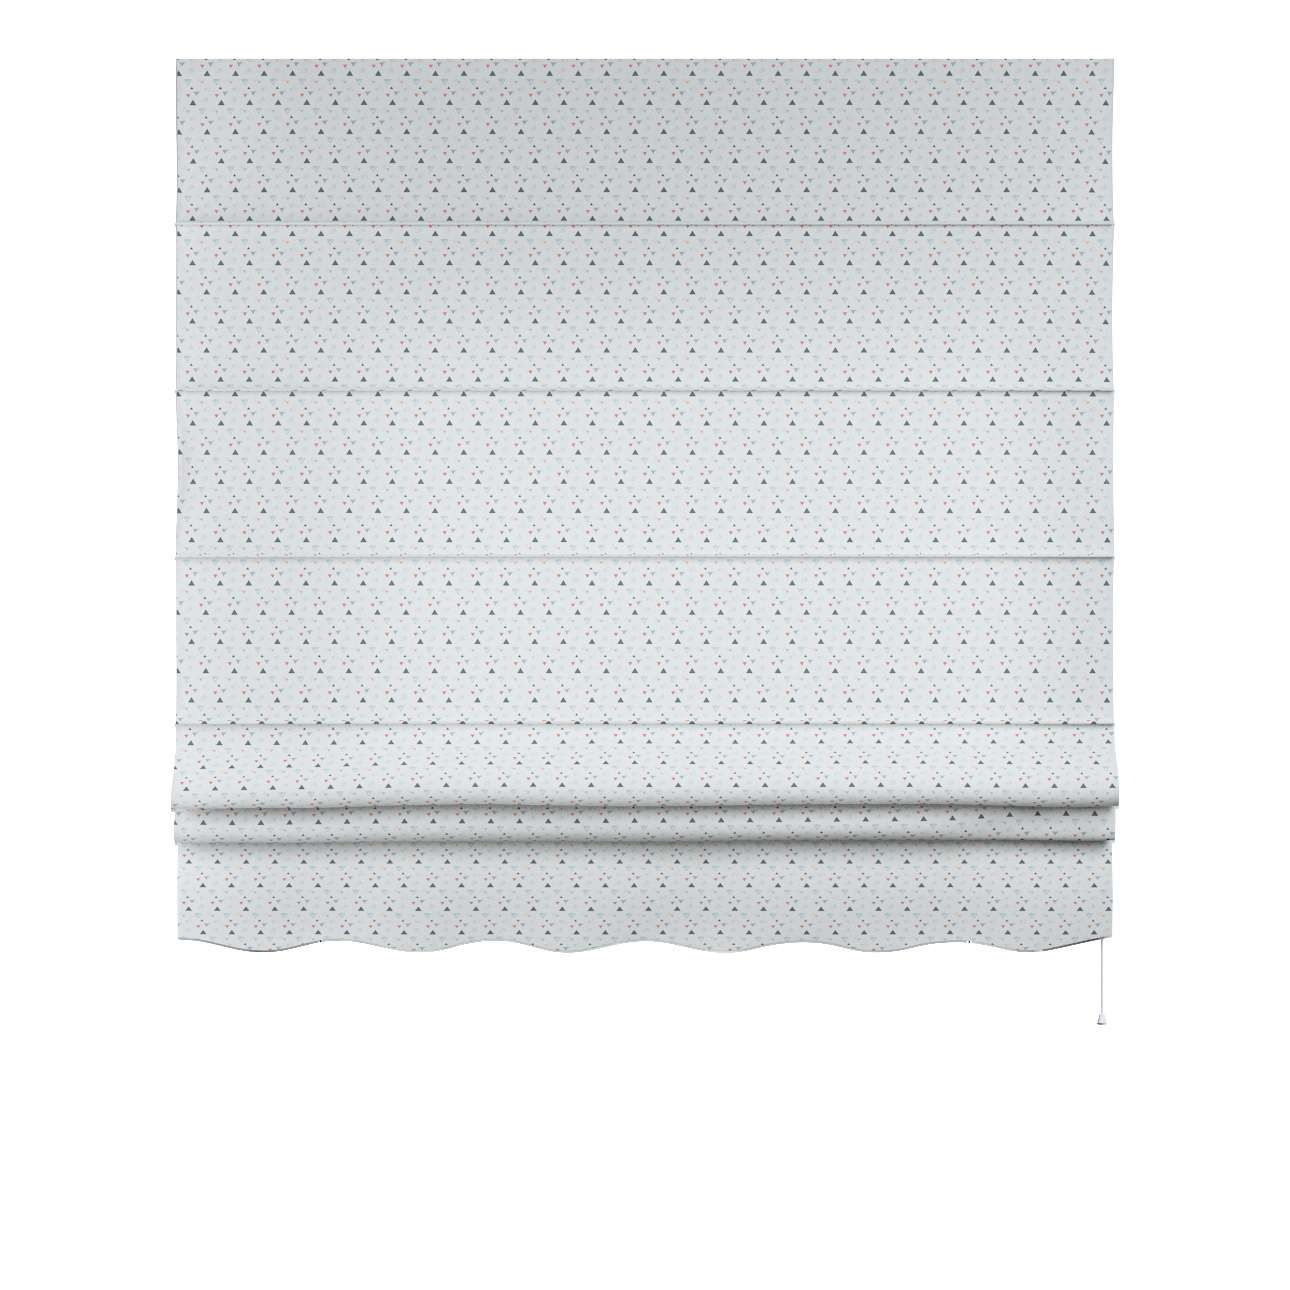 Mela roman blind in collection Magic Collection, fabric: 500-22